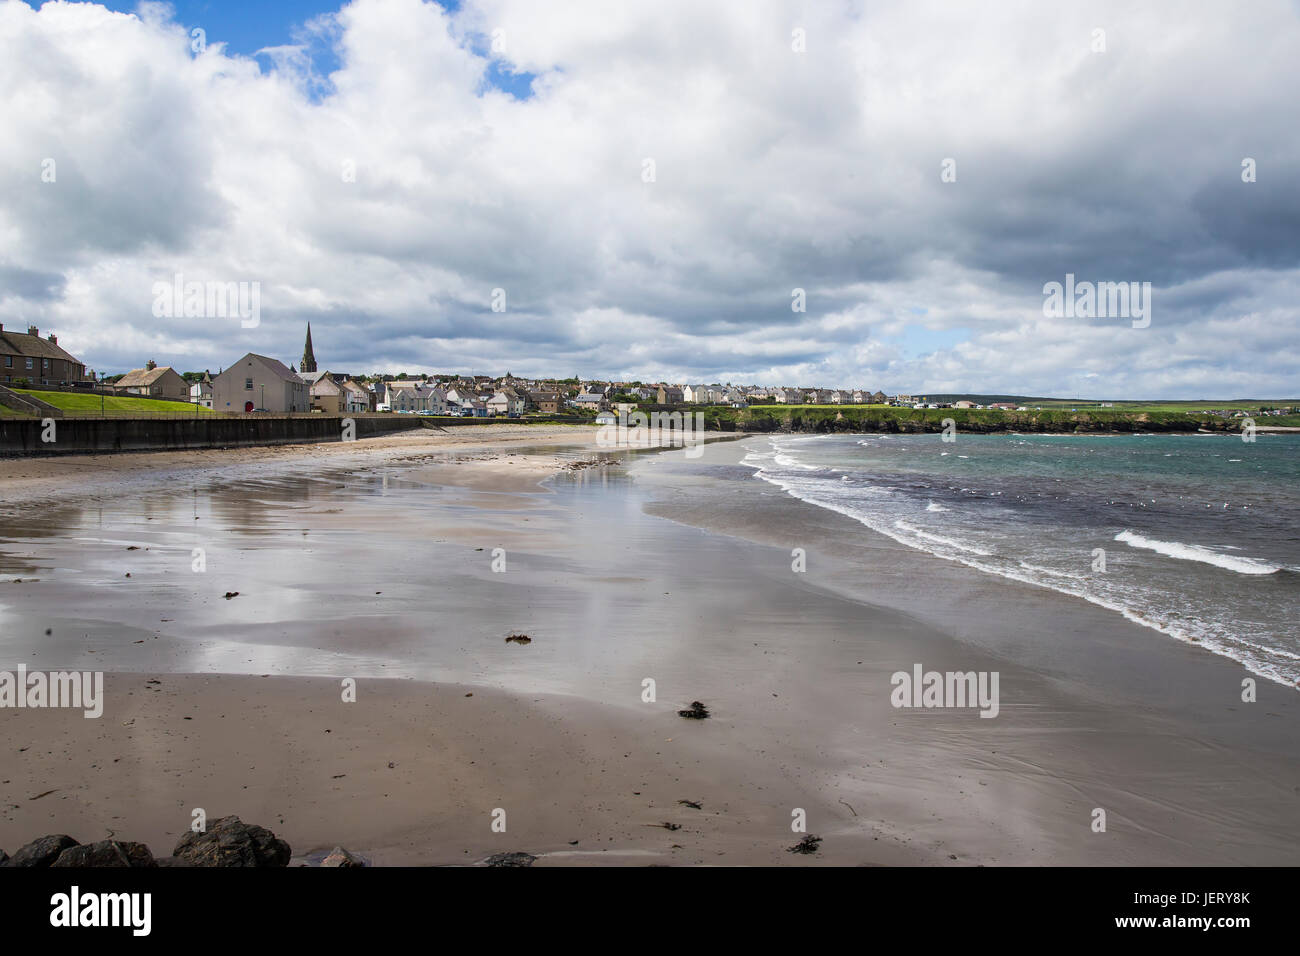 Thurso beach and town in Caithness, Northern Scotland - Stock Image